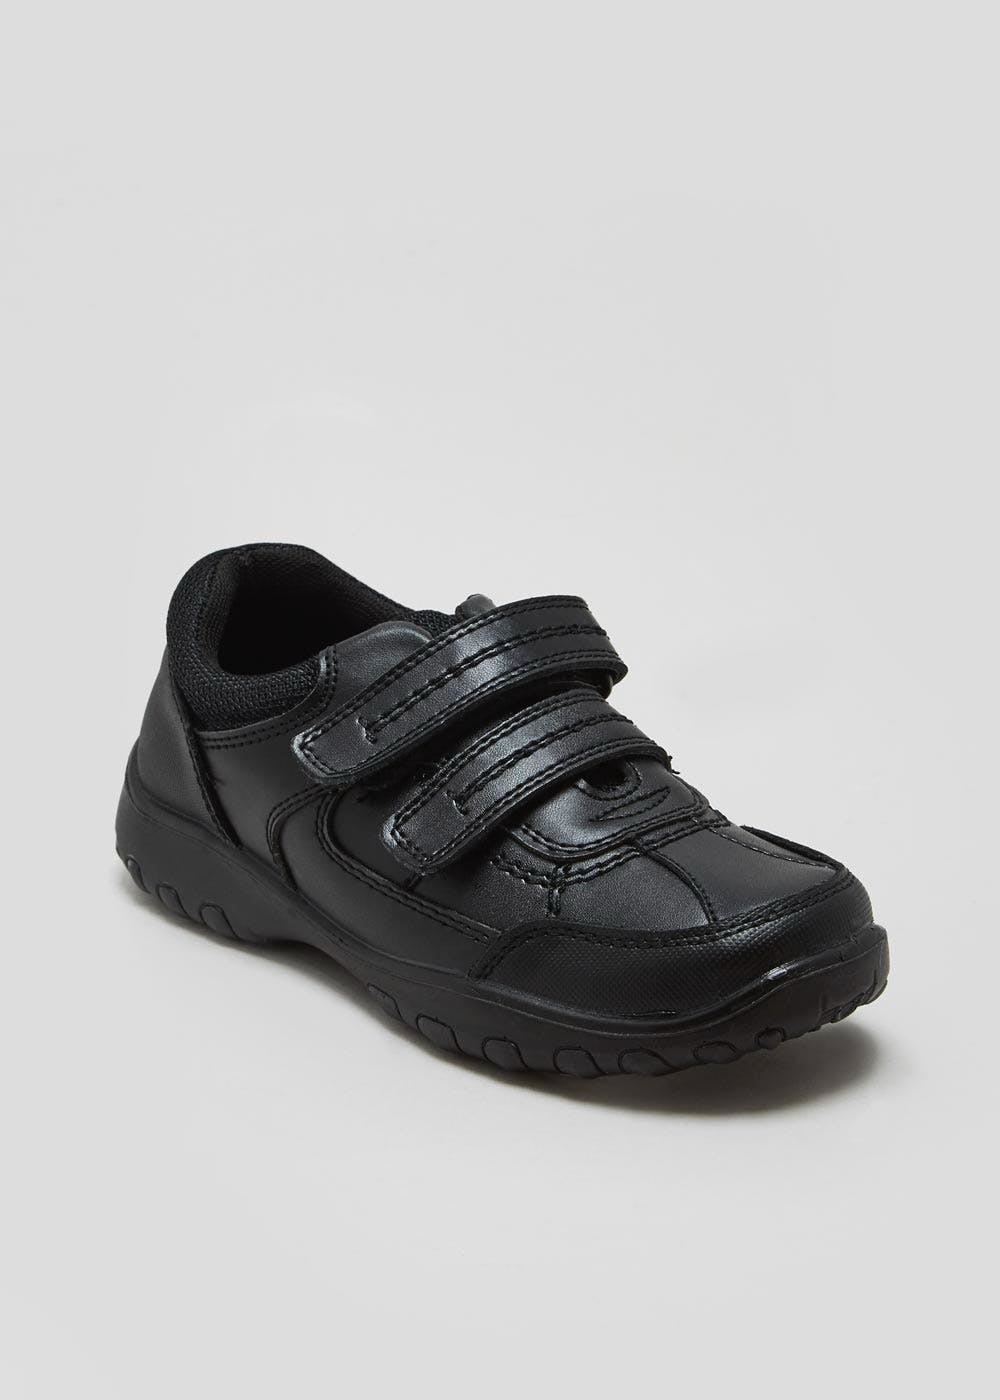 3058be3ab2 Boys Coated Leather Trainer School Shoes (Younger 10-Older 6 ...